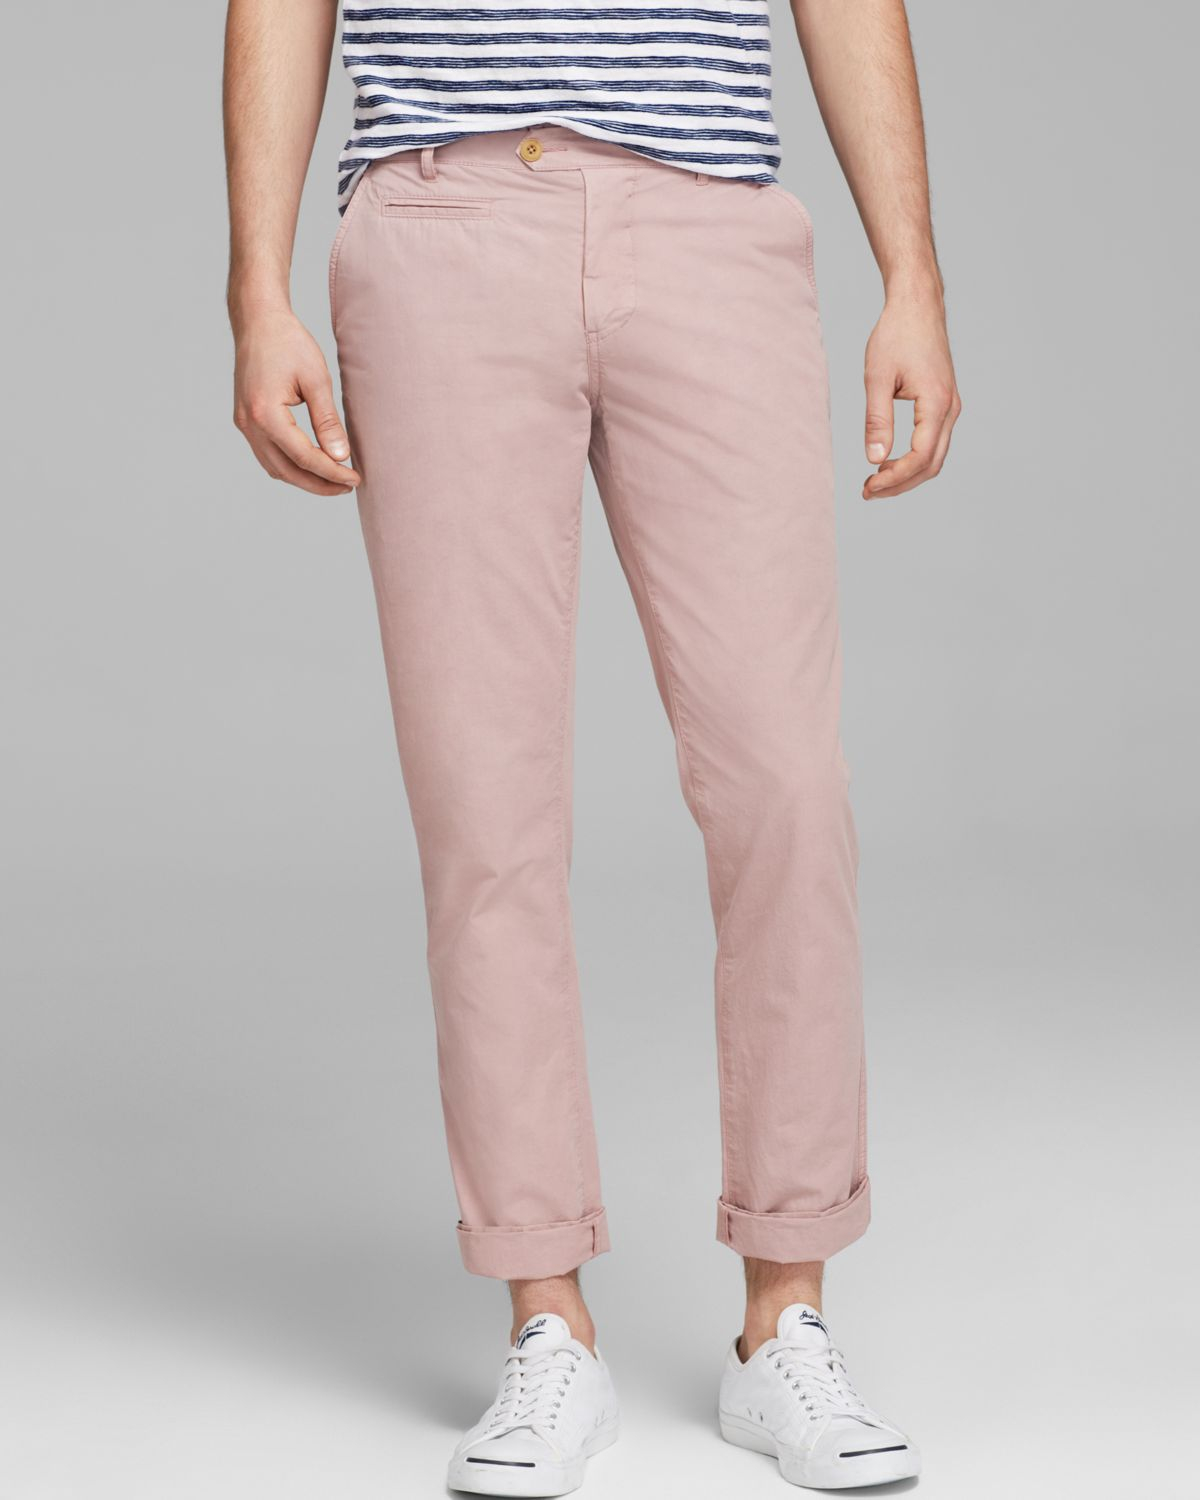 Find Linen Men's Pink Pants, Casual Men's Pink Pants and Cotton Men's Pink Pants at Macy's. Macy's Presents: The Edit - A curated mix of fashion and inspiration Check It Out Free Shipping with $99 purchase + Free Store Pickup.